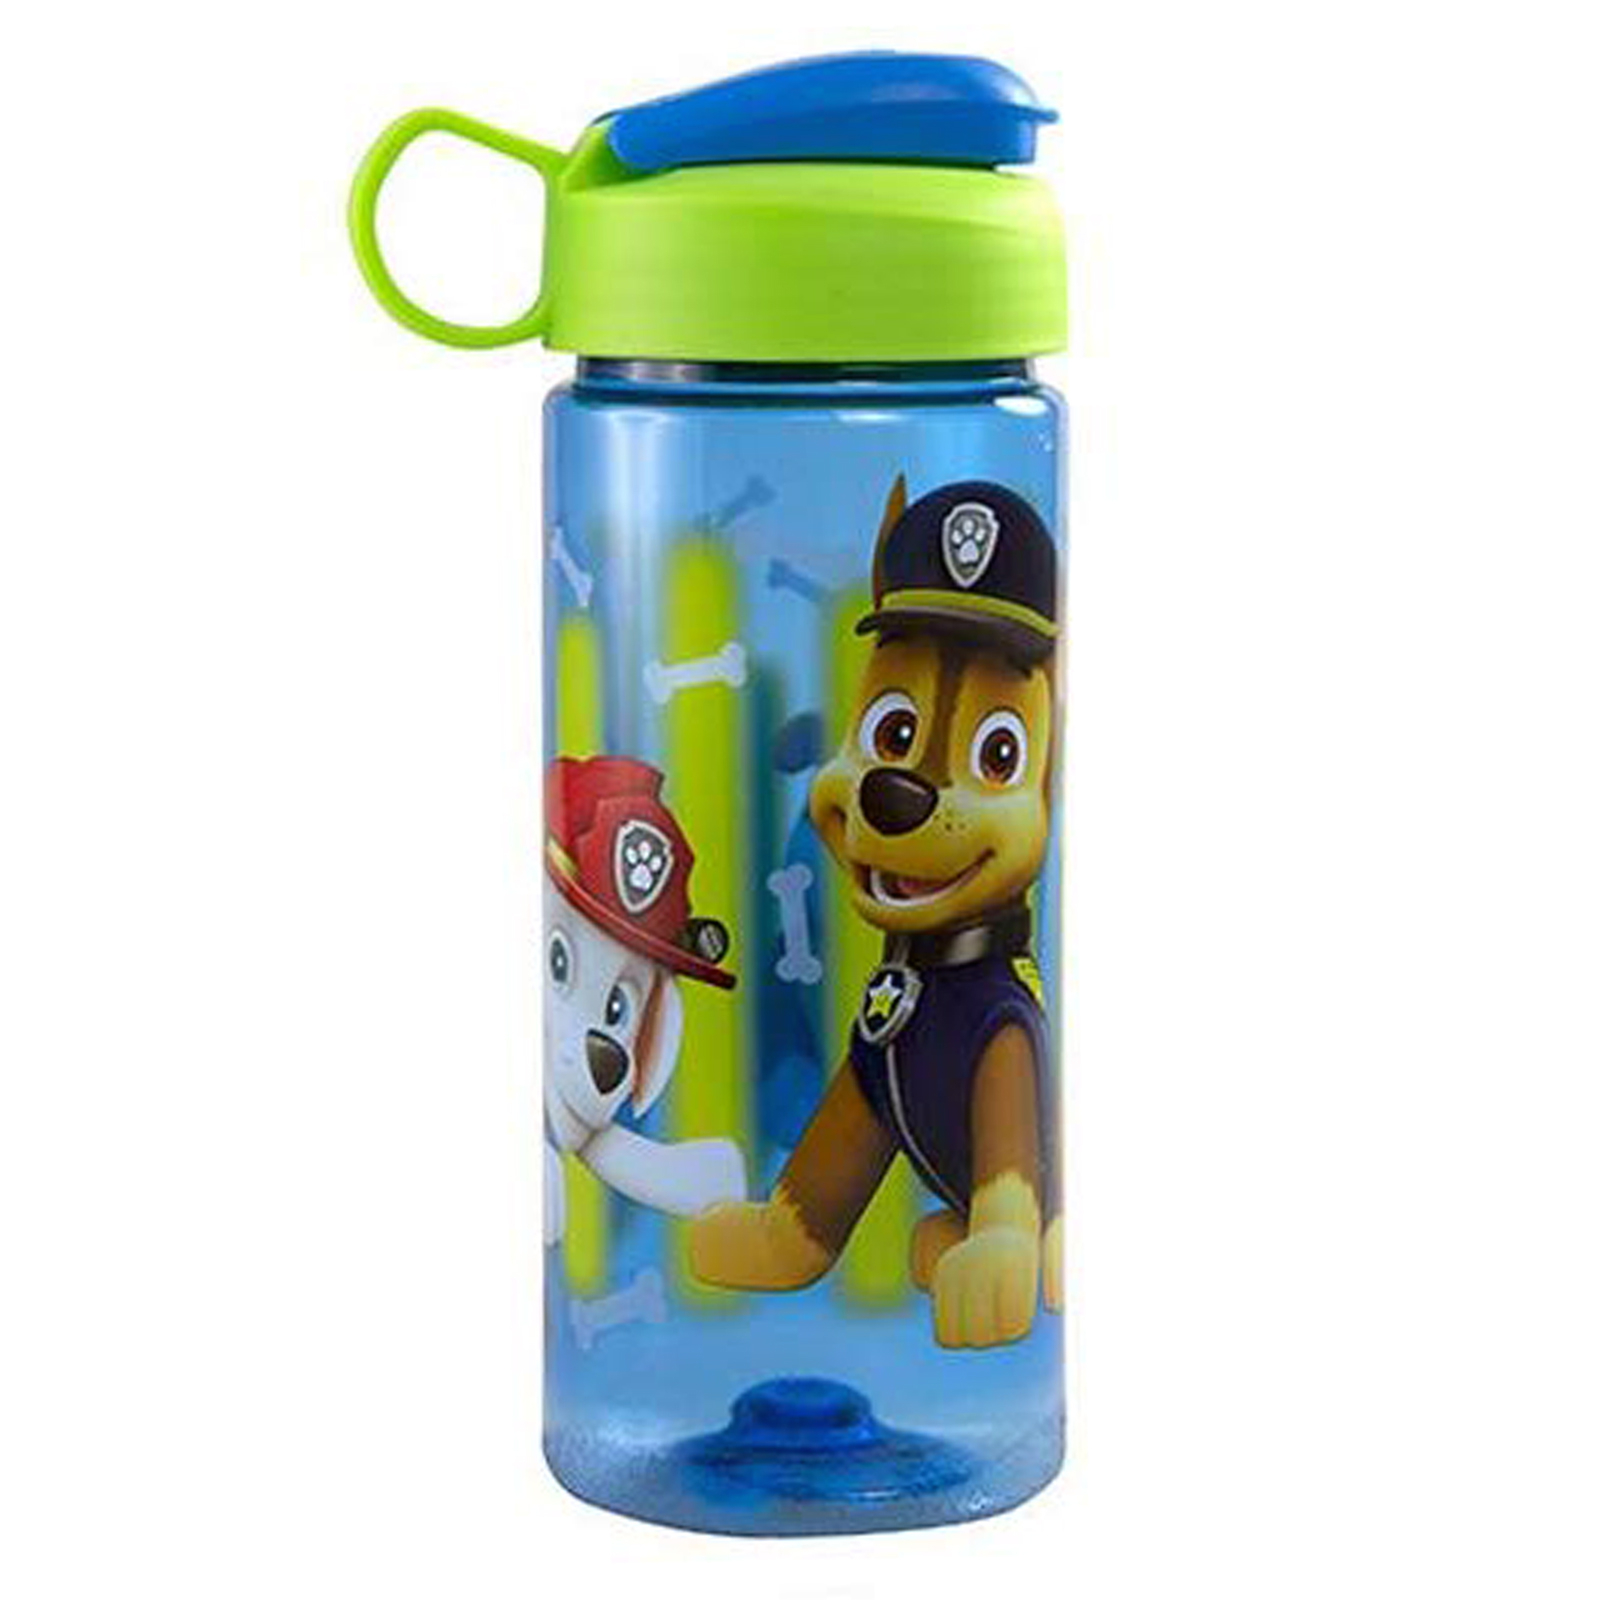 Paw Patrol from Nickelodeon 16.5oz Water Bottle with Carry Loop and Snap Lid